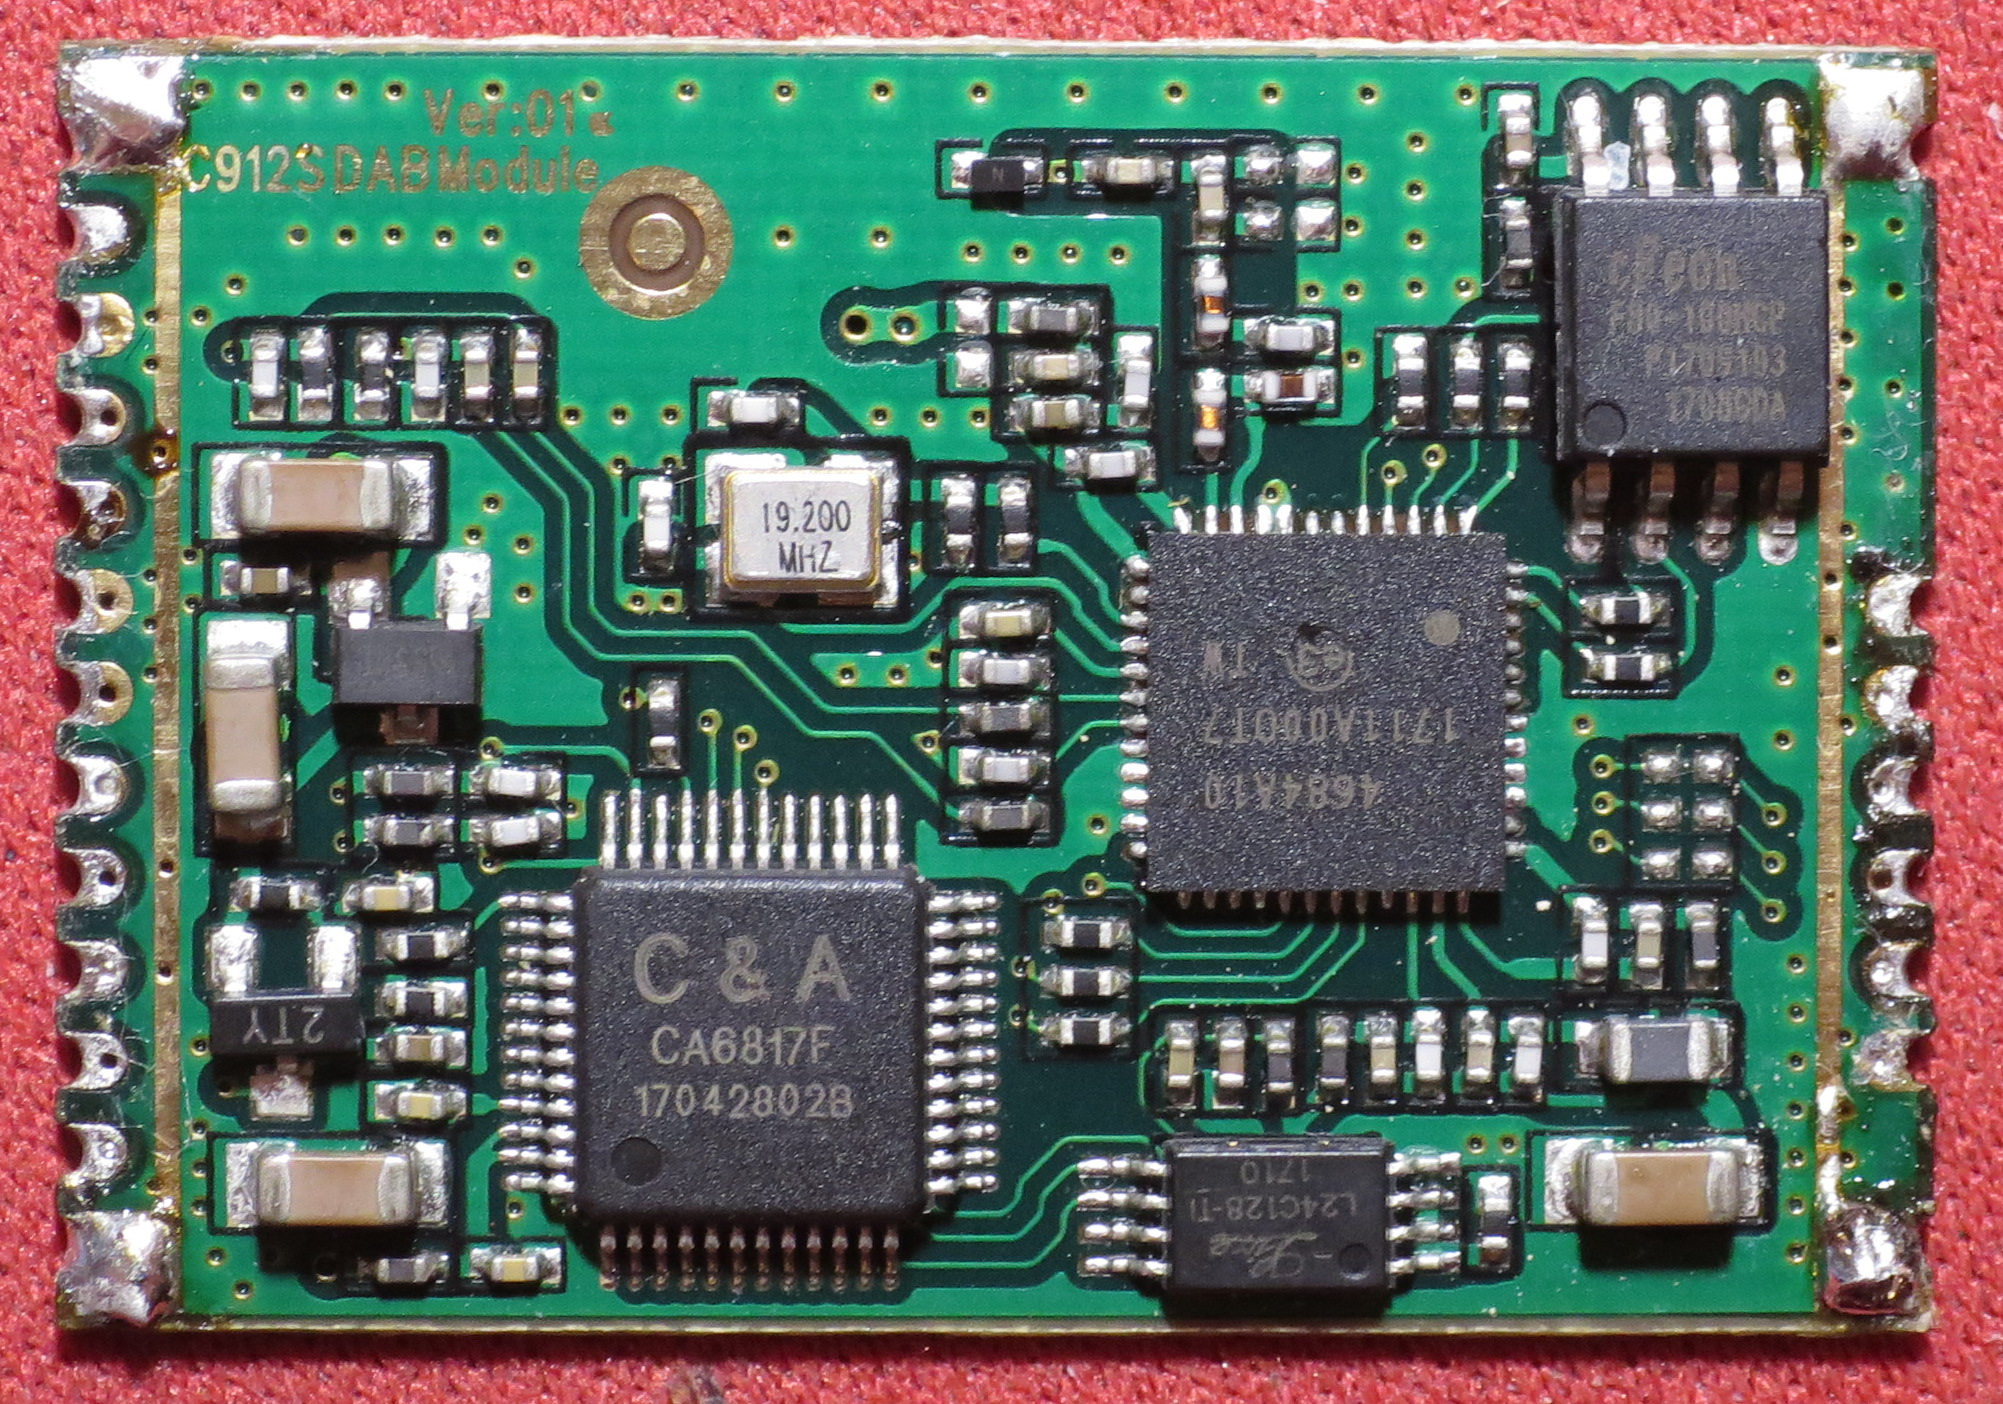 Top view of the add-on PCB